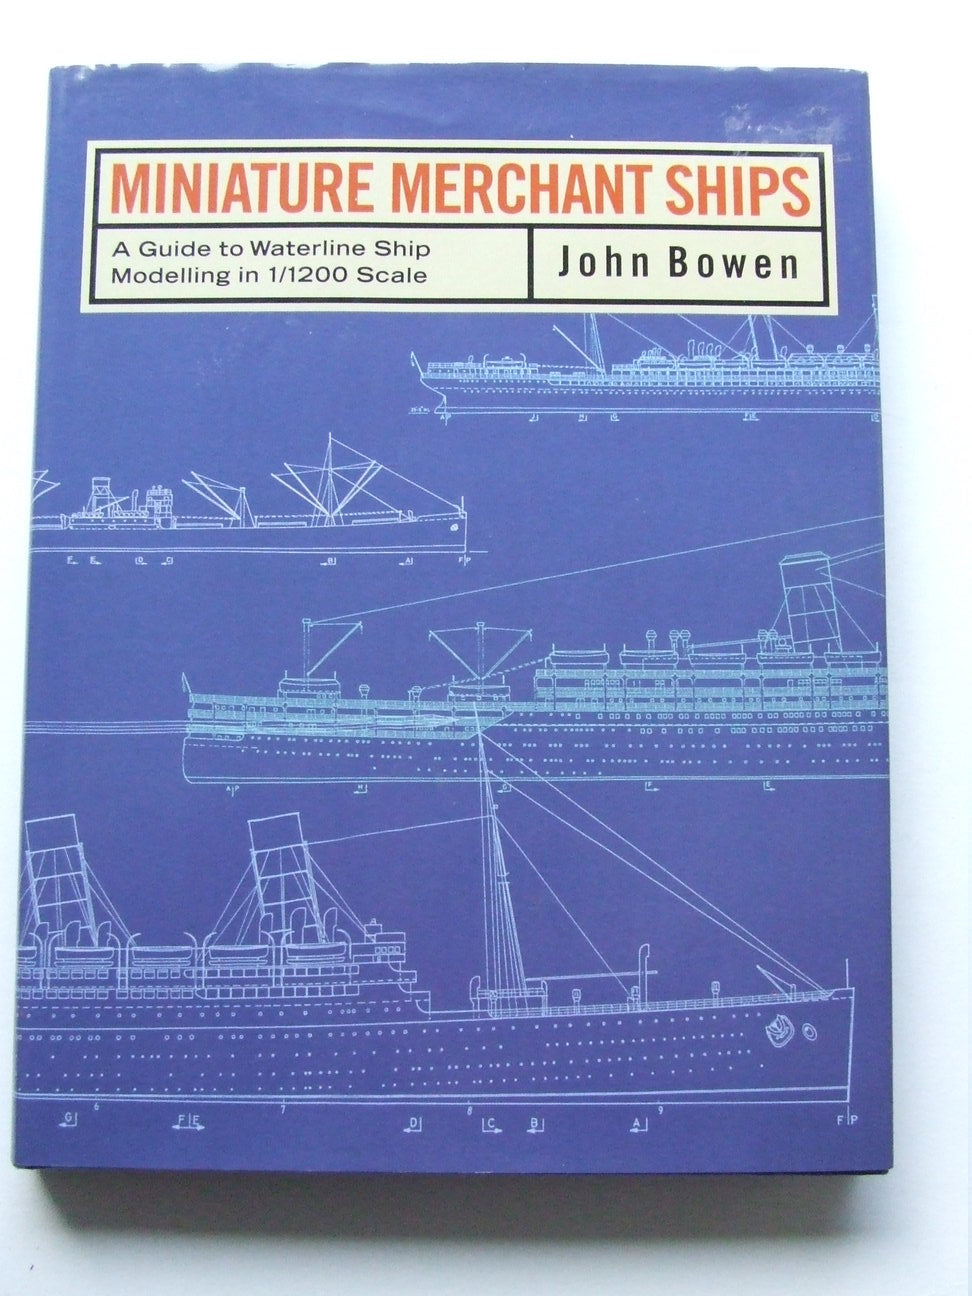 Miniature Merchant Ships